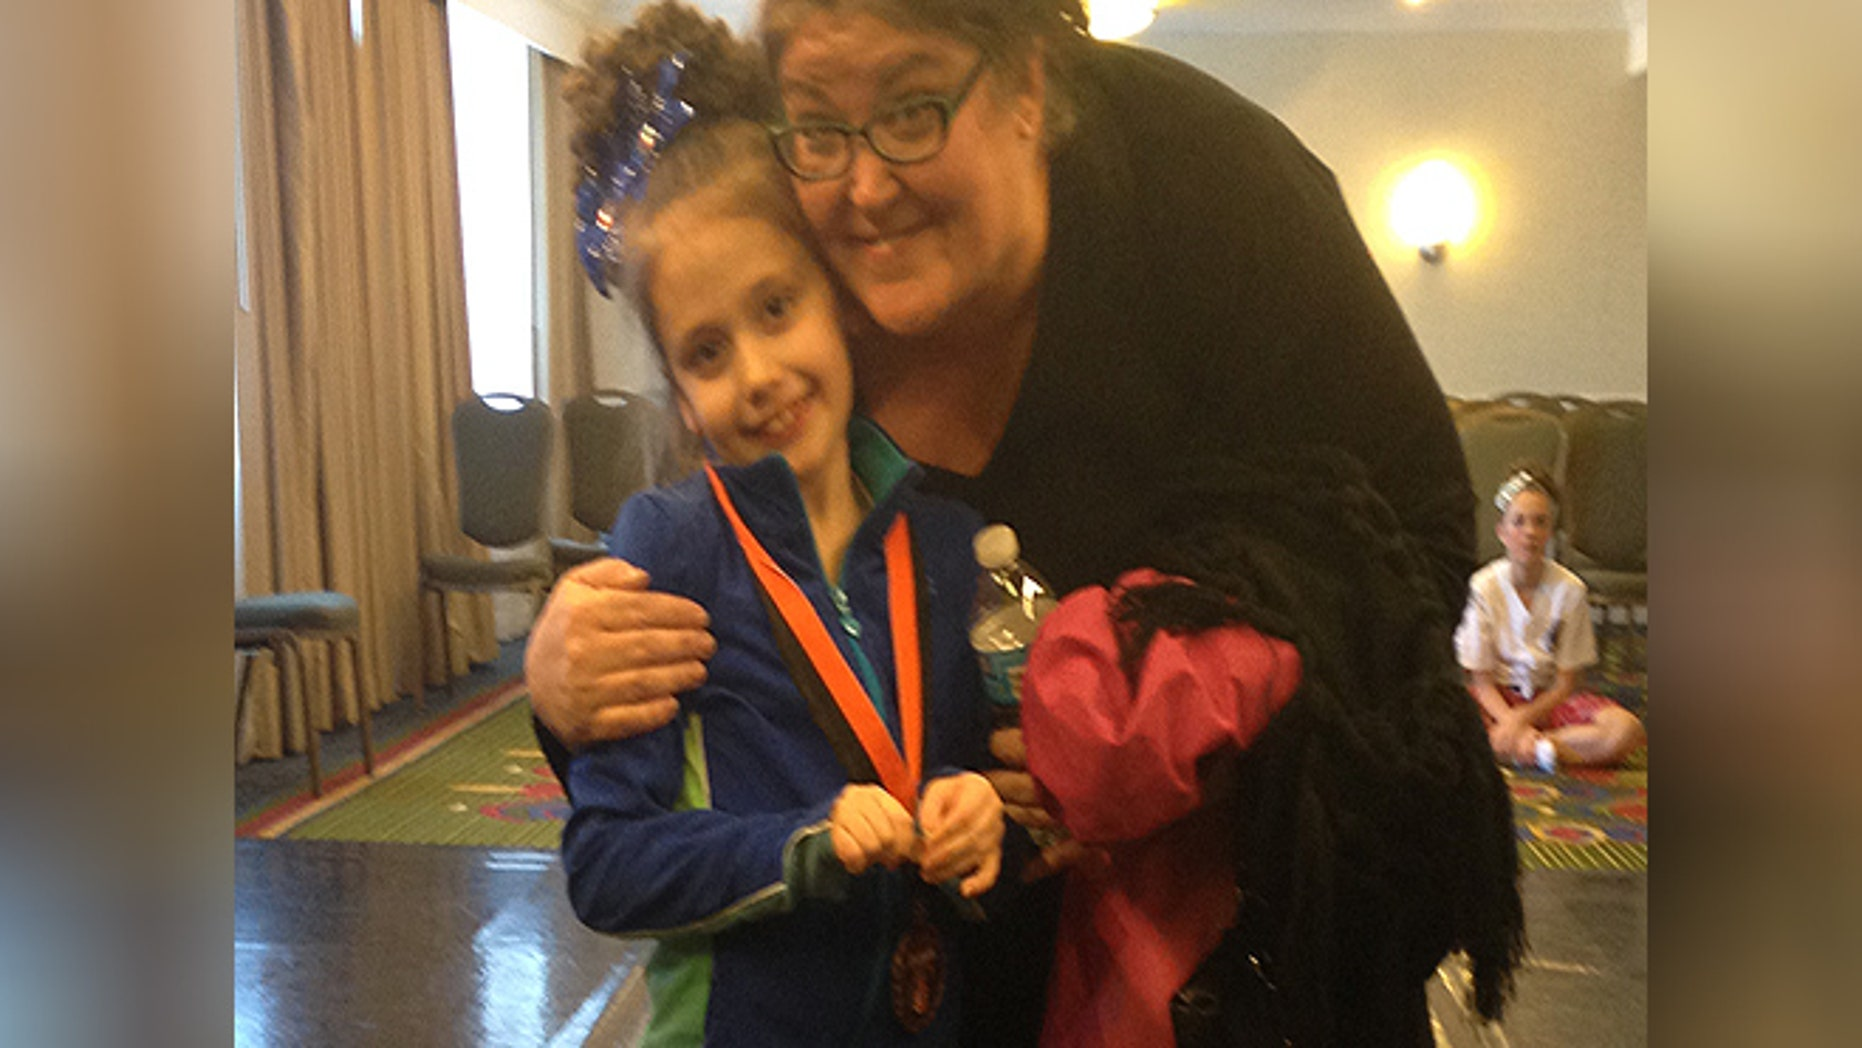 Michele Thornton claims officials at Oldmans Township Elementary School barred her 9-year-old daughter from a school party because it was only for students who took PARCC exams. (Courtesy of MIchele Thornton)